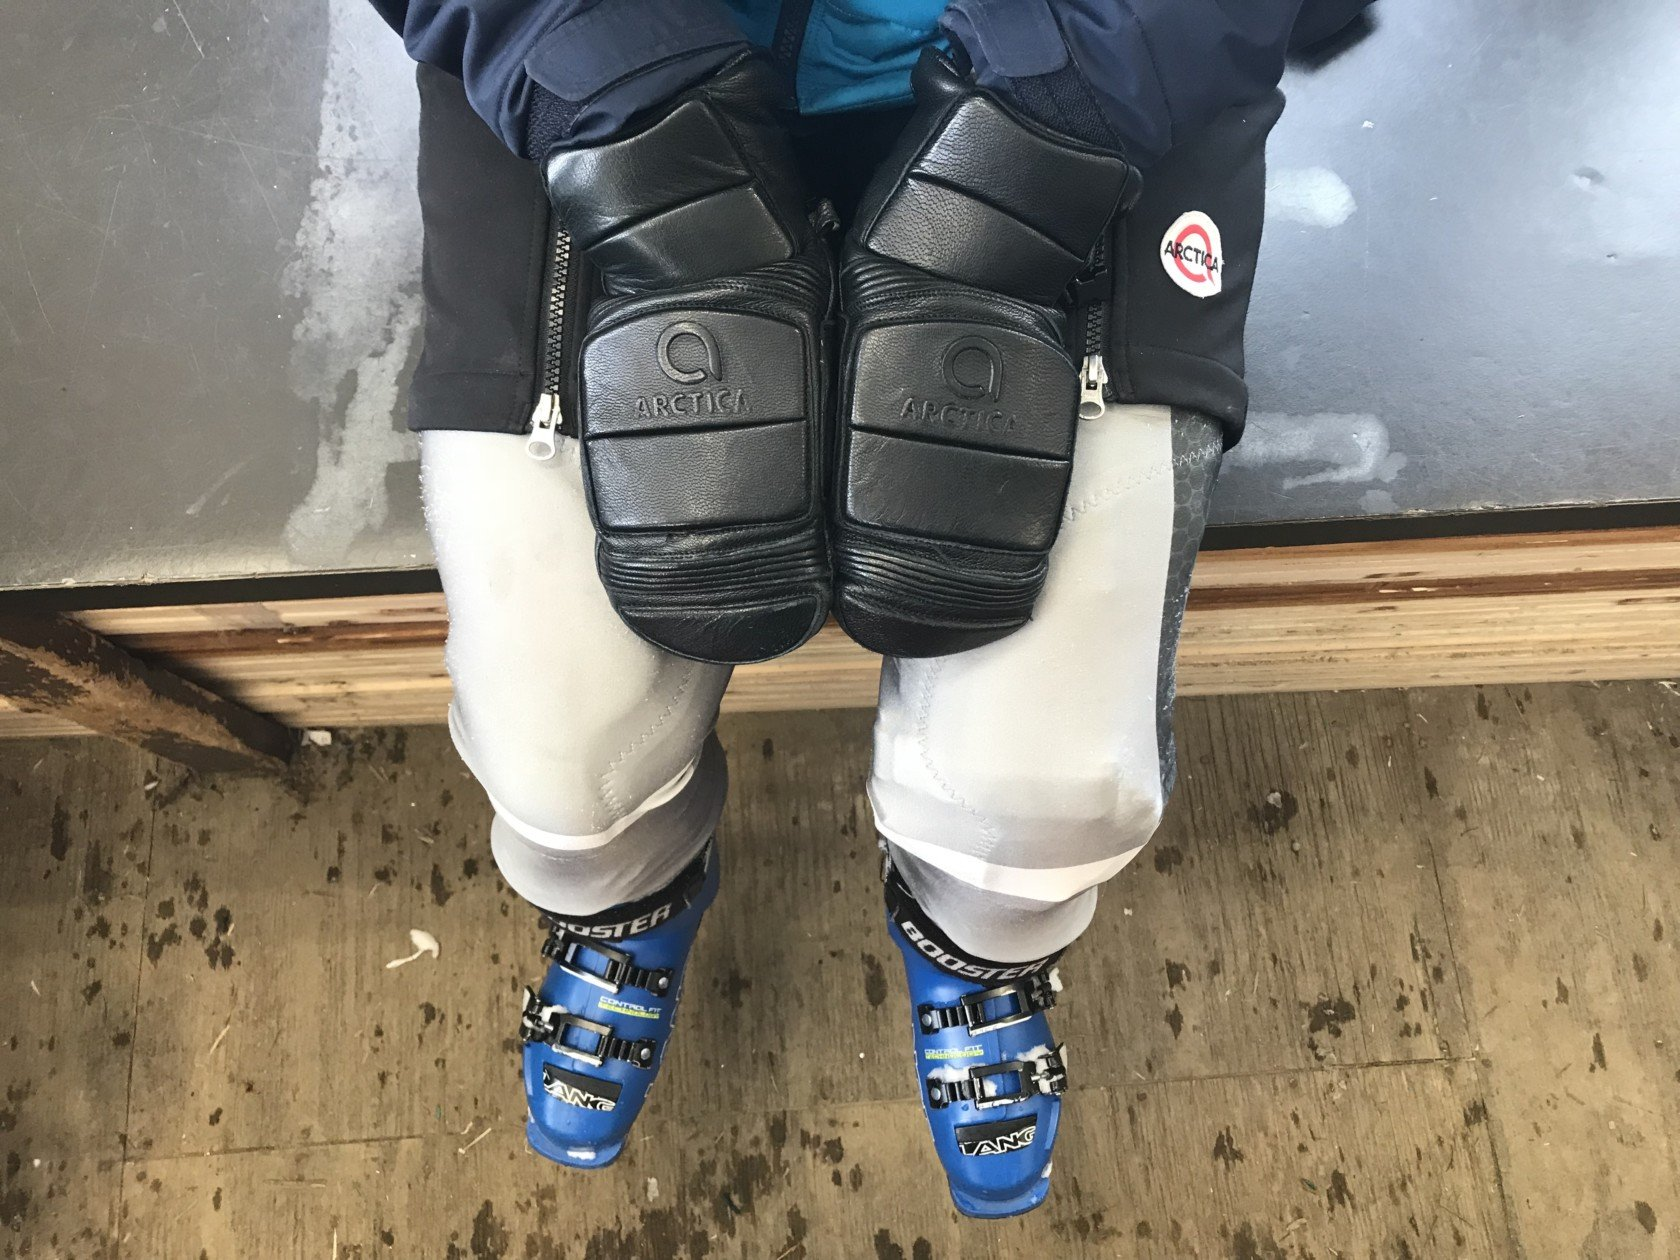 Ski racer in their Arctica race suit, shorts and mittens.